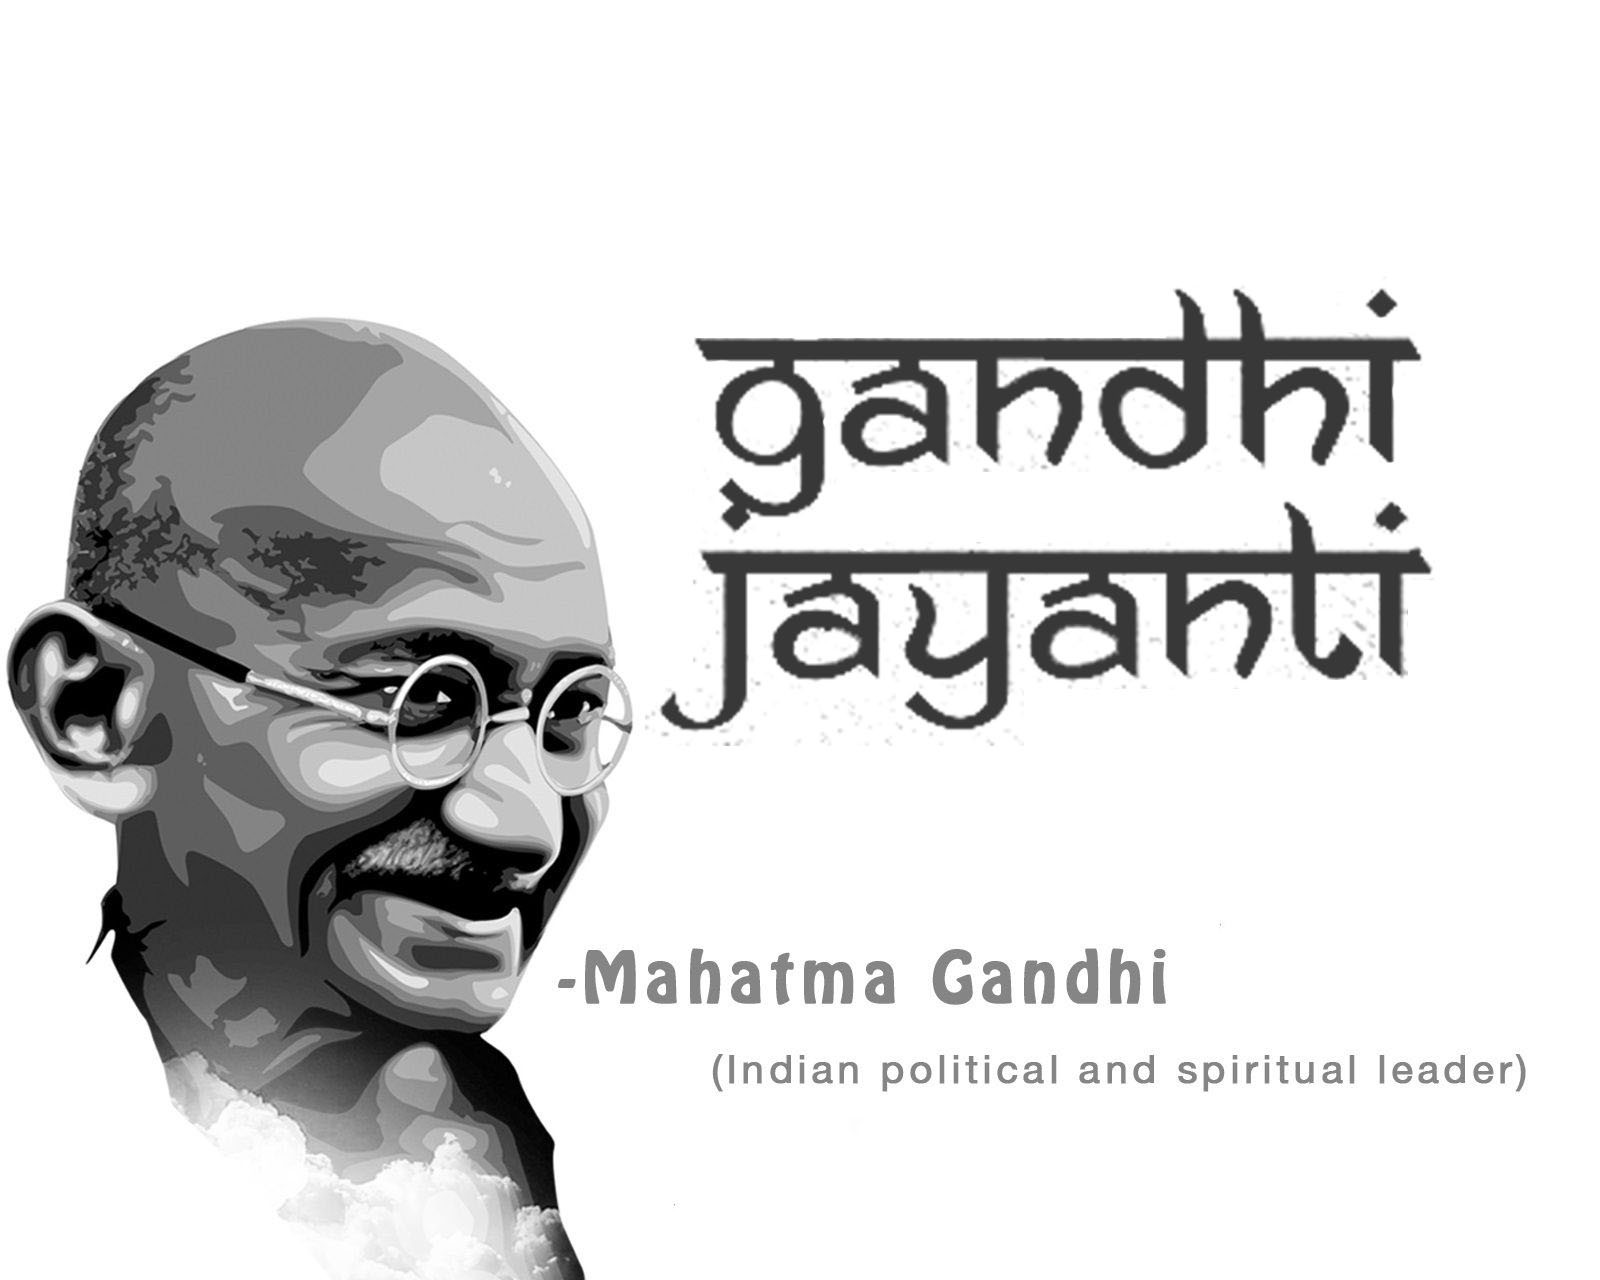 happy gandhi jayanti on 2nd october pc wallpaper